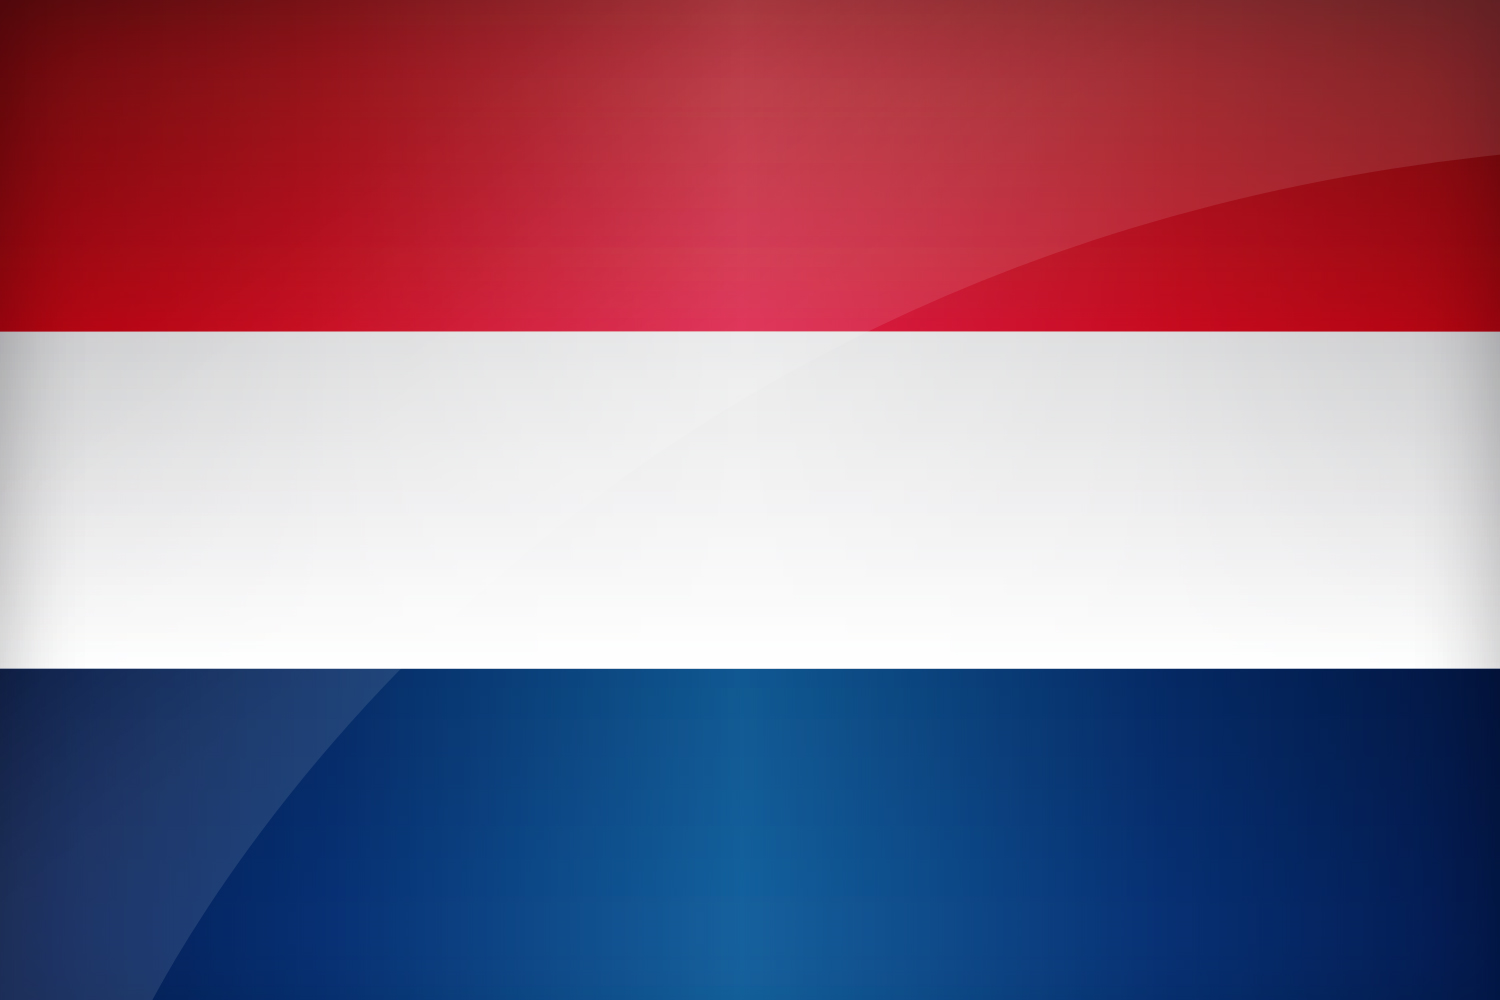 Netherlands Flag Wallpaper | Others HD Wallpapers